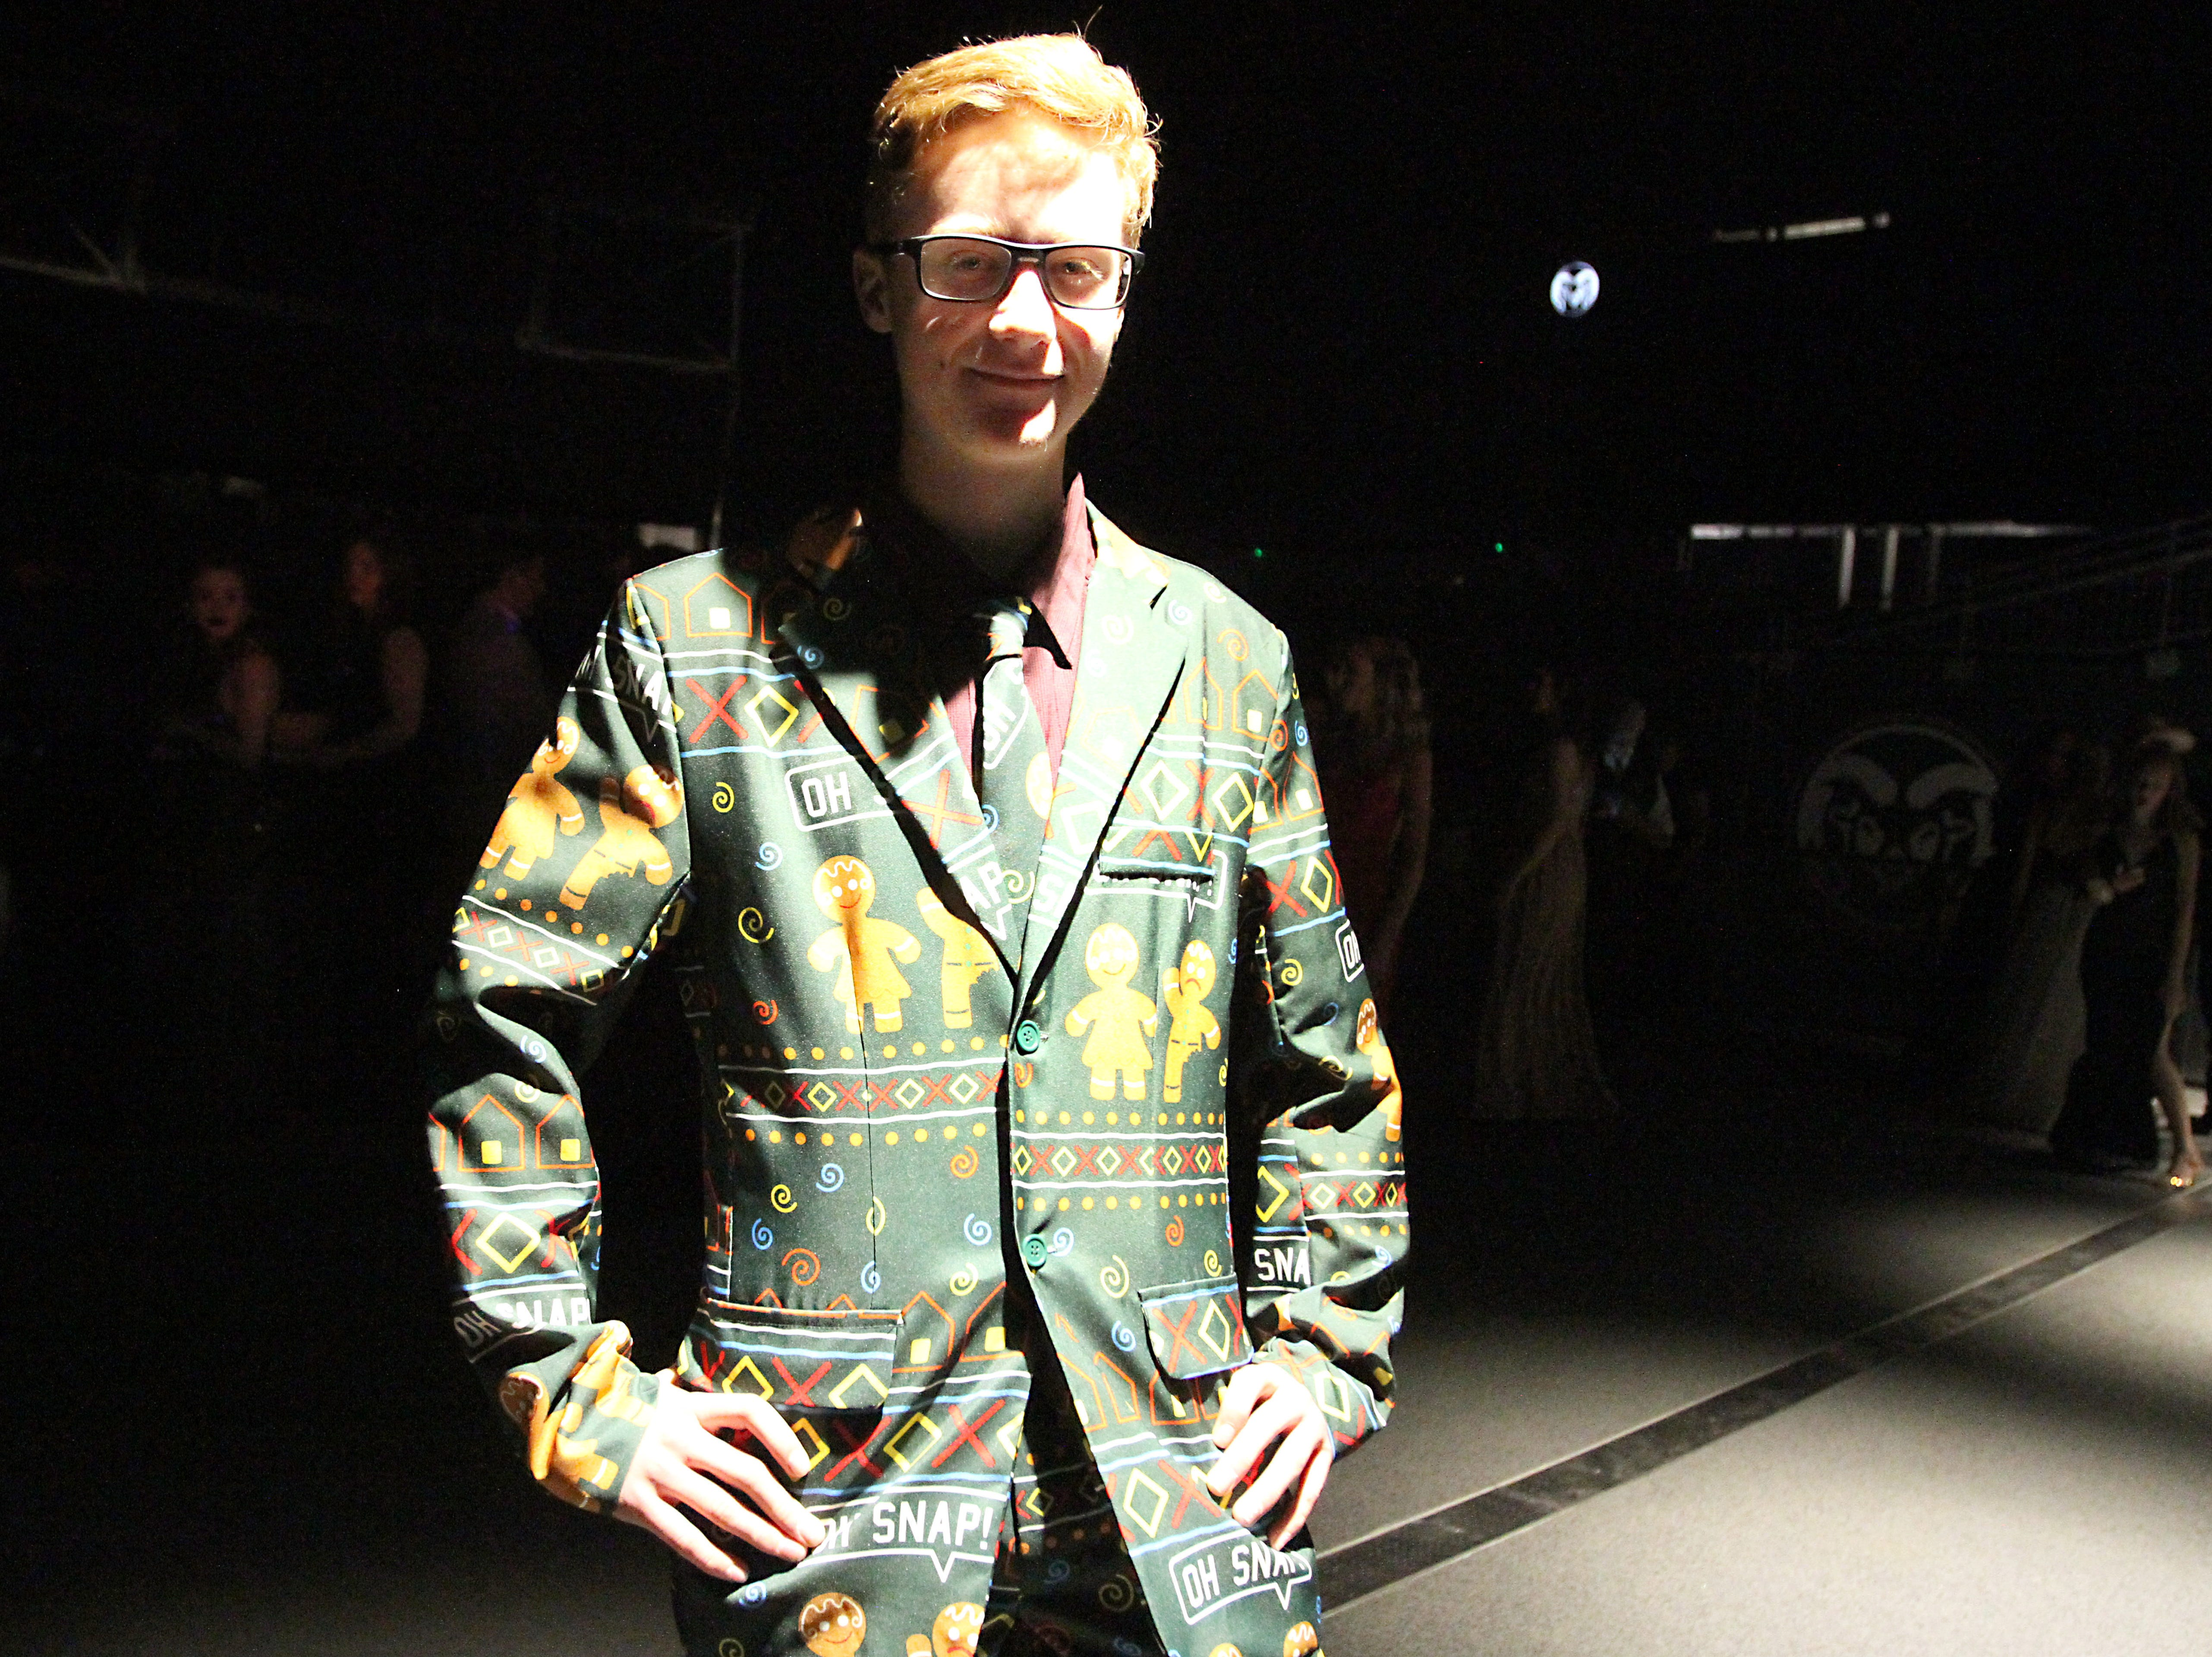 Joel Blocker / For the Coloradoan  Cody Robertson, a junior at Fort Collins High School, posses for a photo in his ginger bread suit during the Fort Collins High School prom held at Canvas stadium Saturday night.